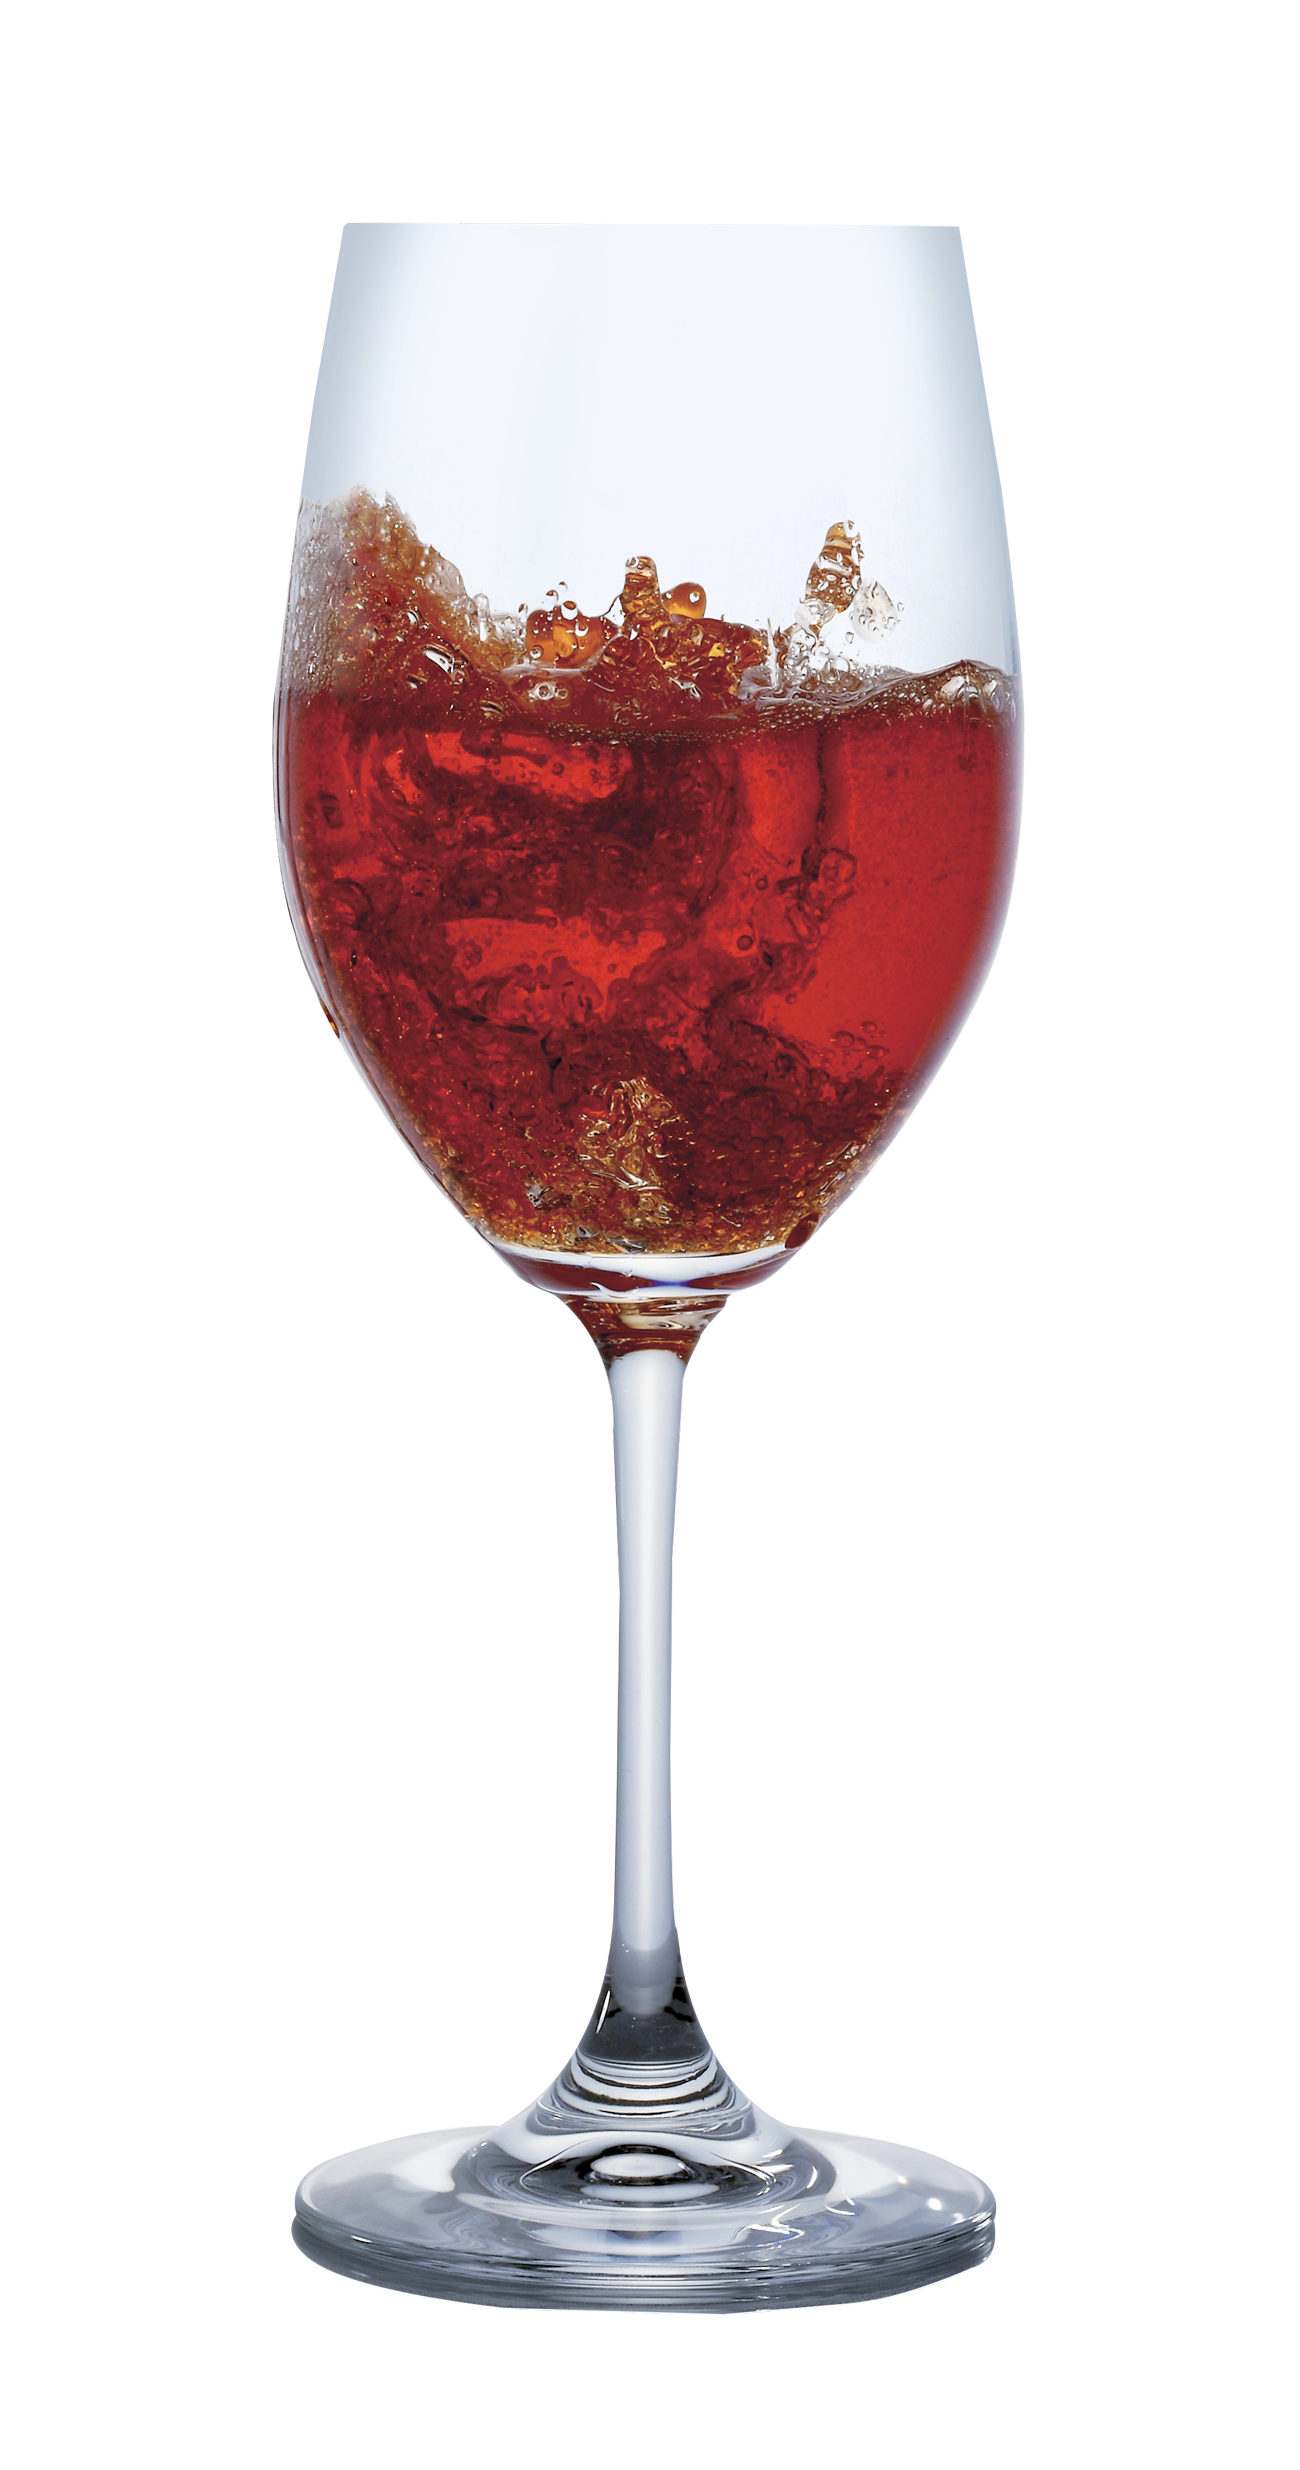 Transparent wine glass png. Cocktail image pngpix